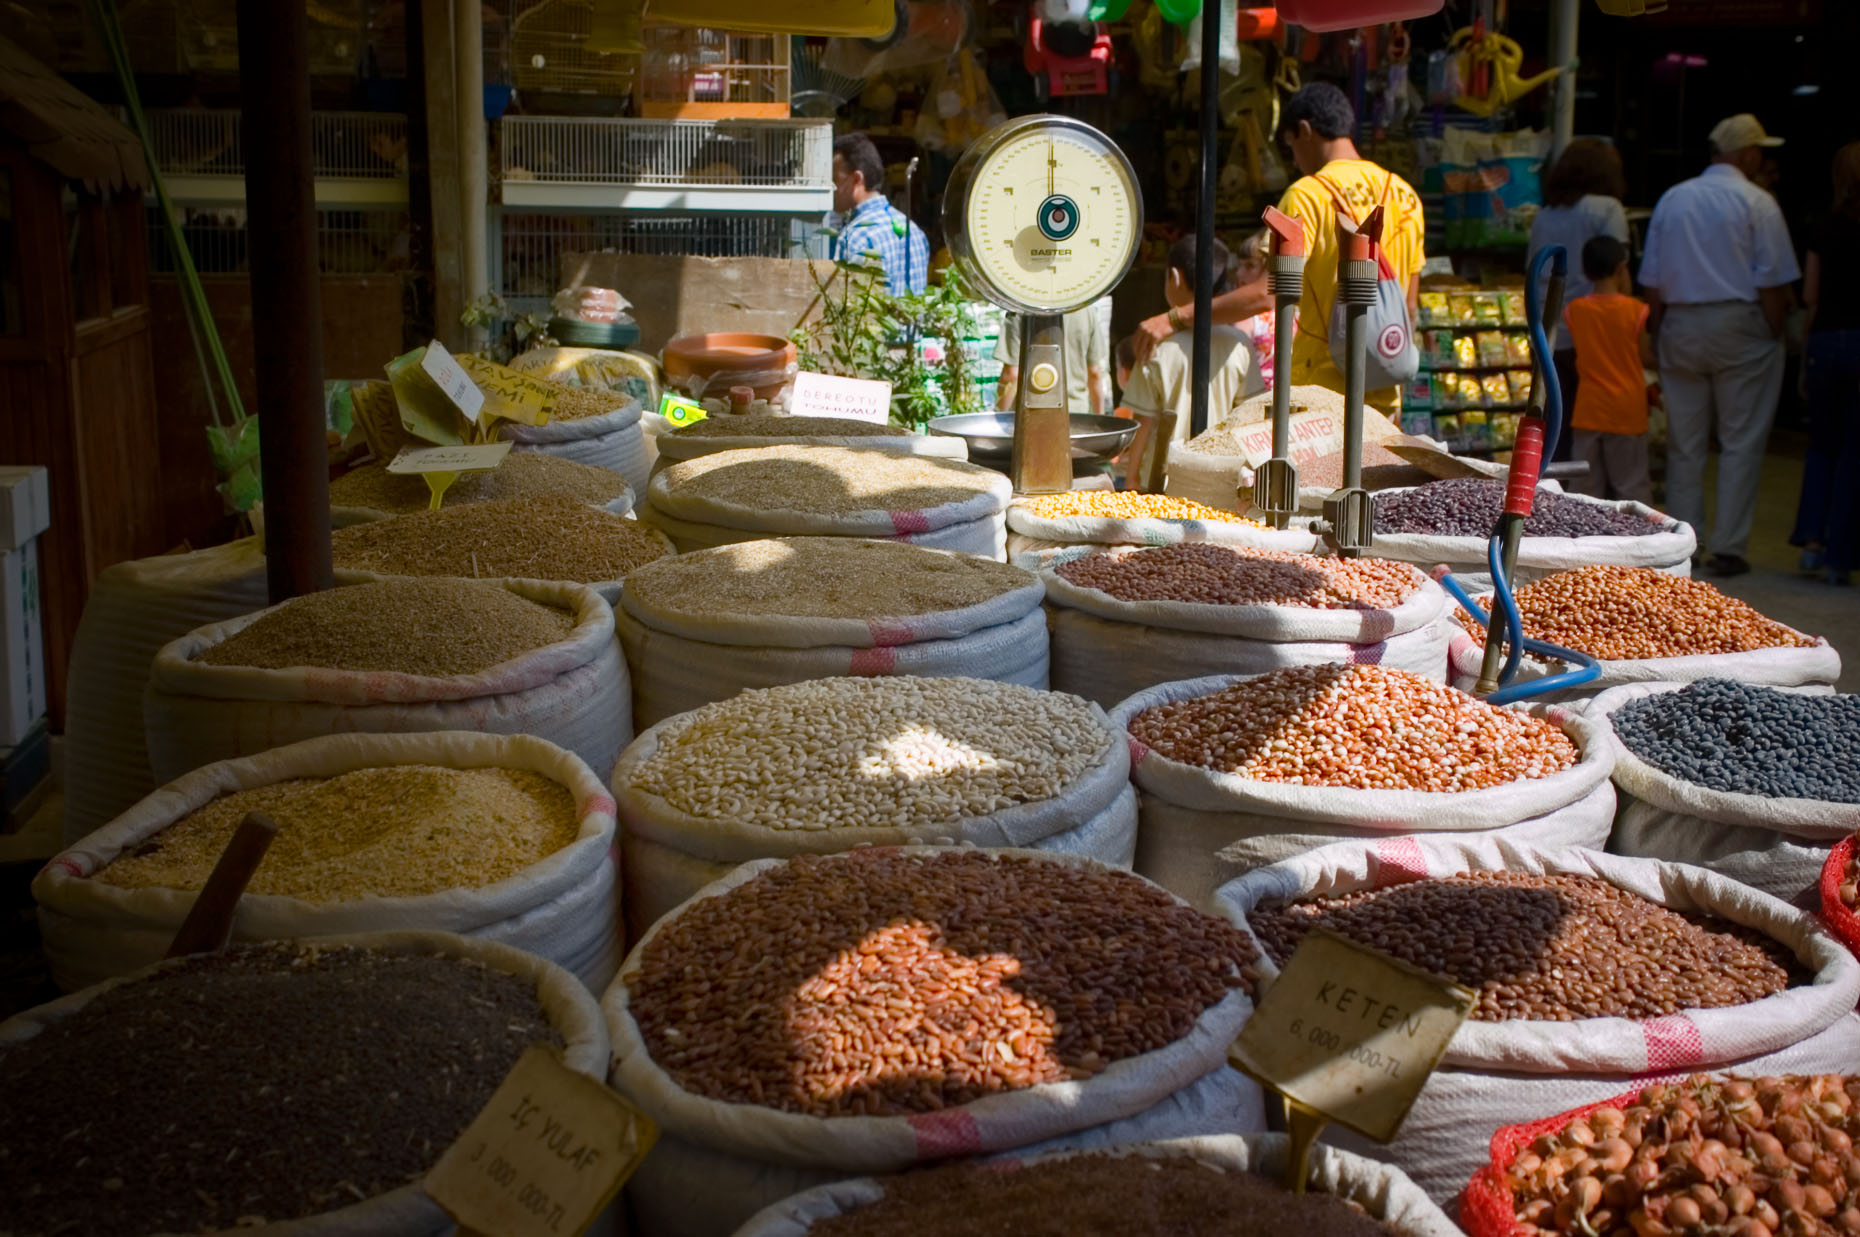 Image of spice baskets in Grand Bizarre in Istanbul Turkey.